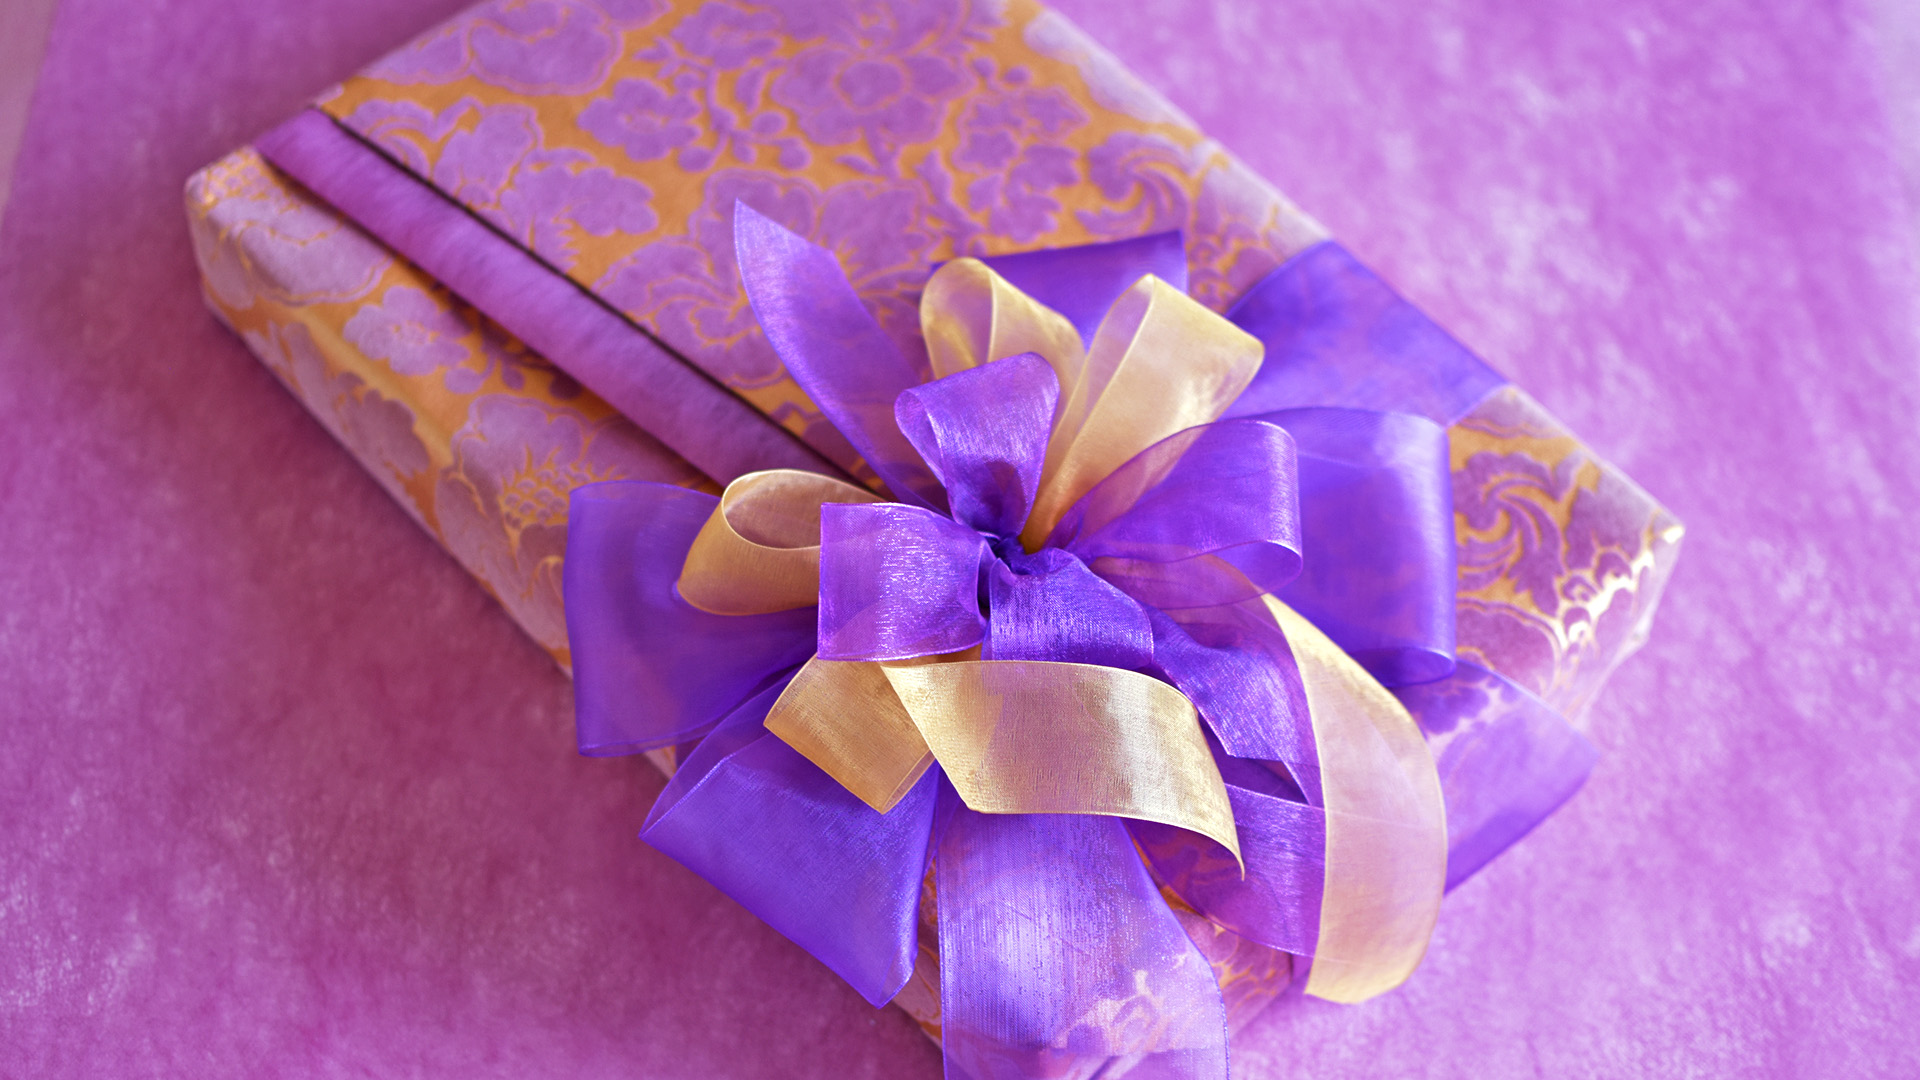 Gift wrapped in a blue paper with golden pattern, with a golden ribbon bow and white roses decorations.